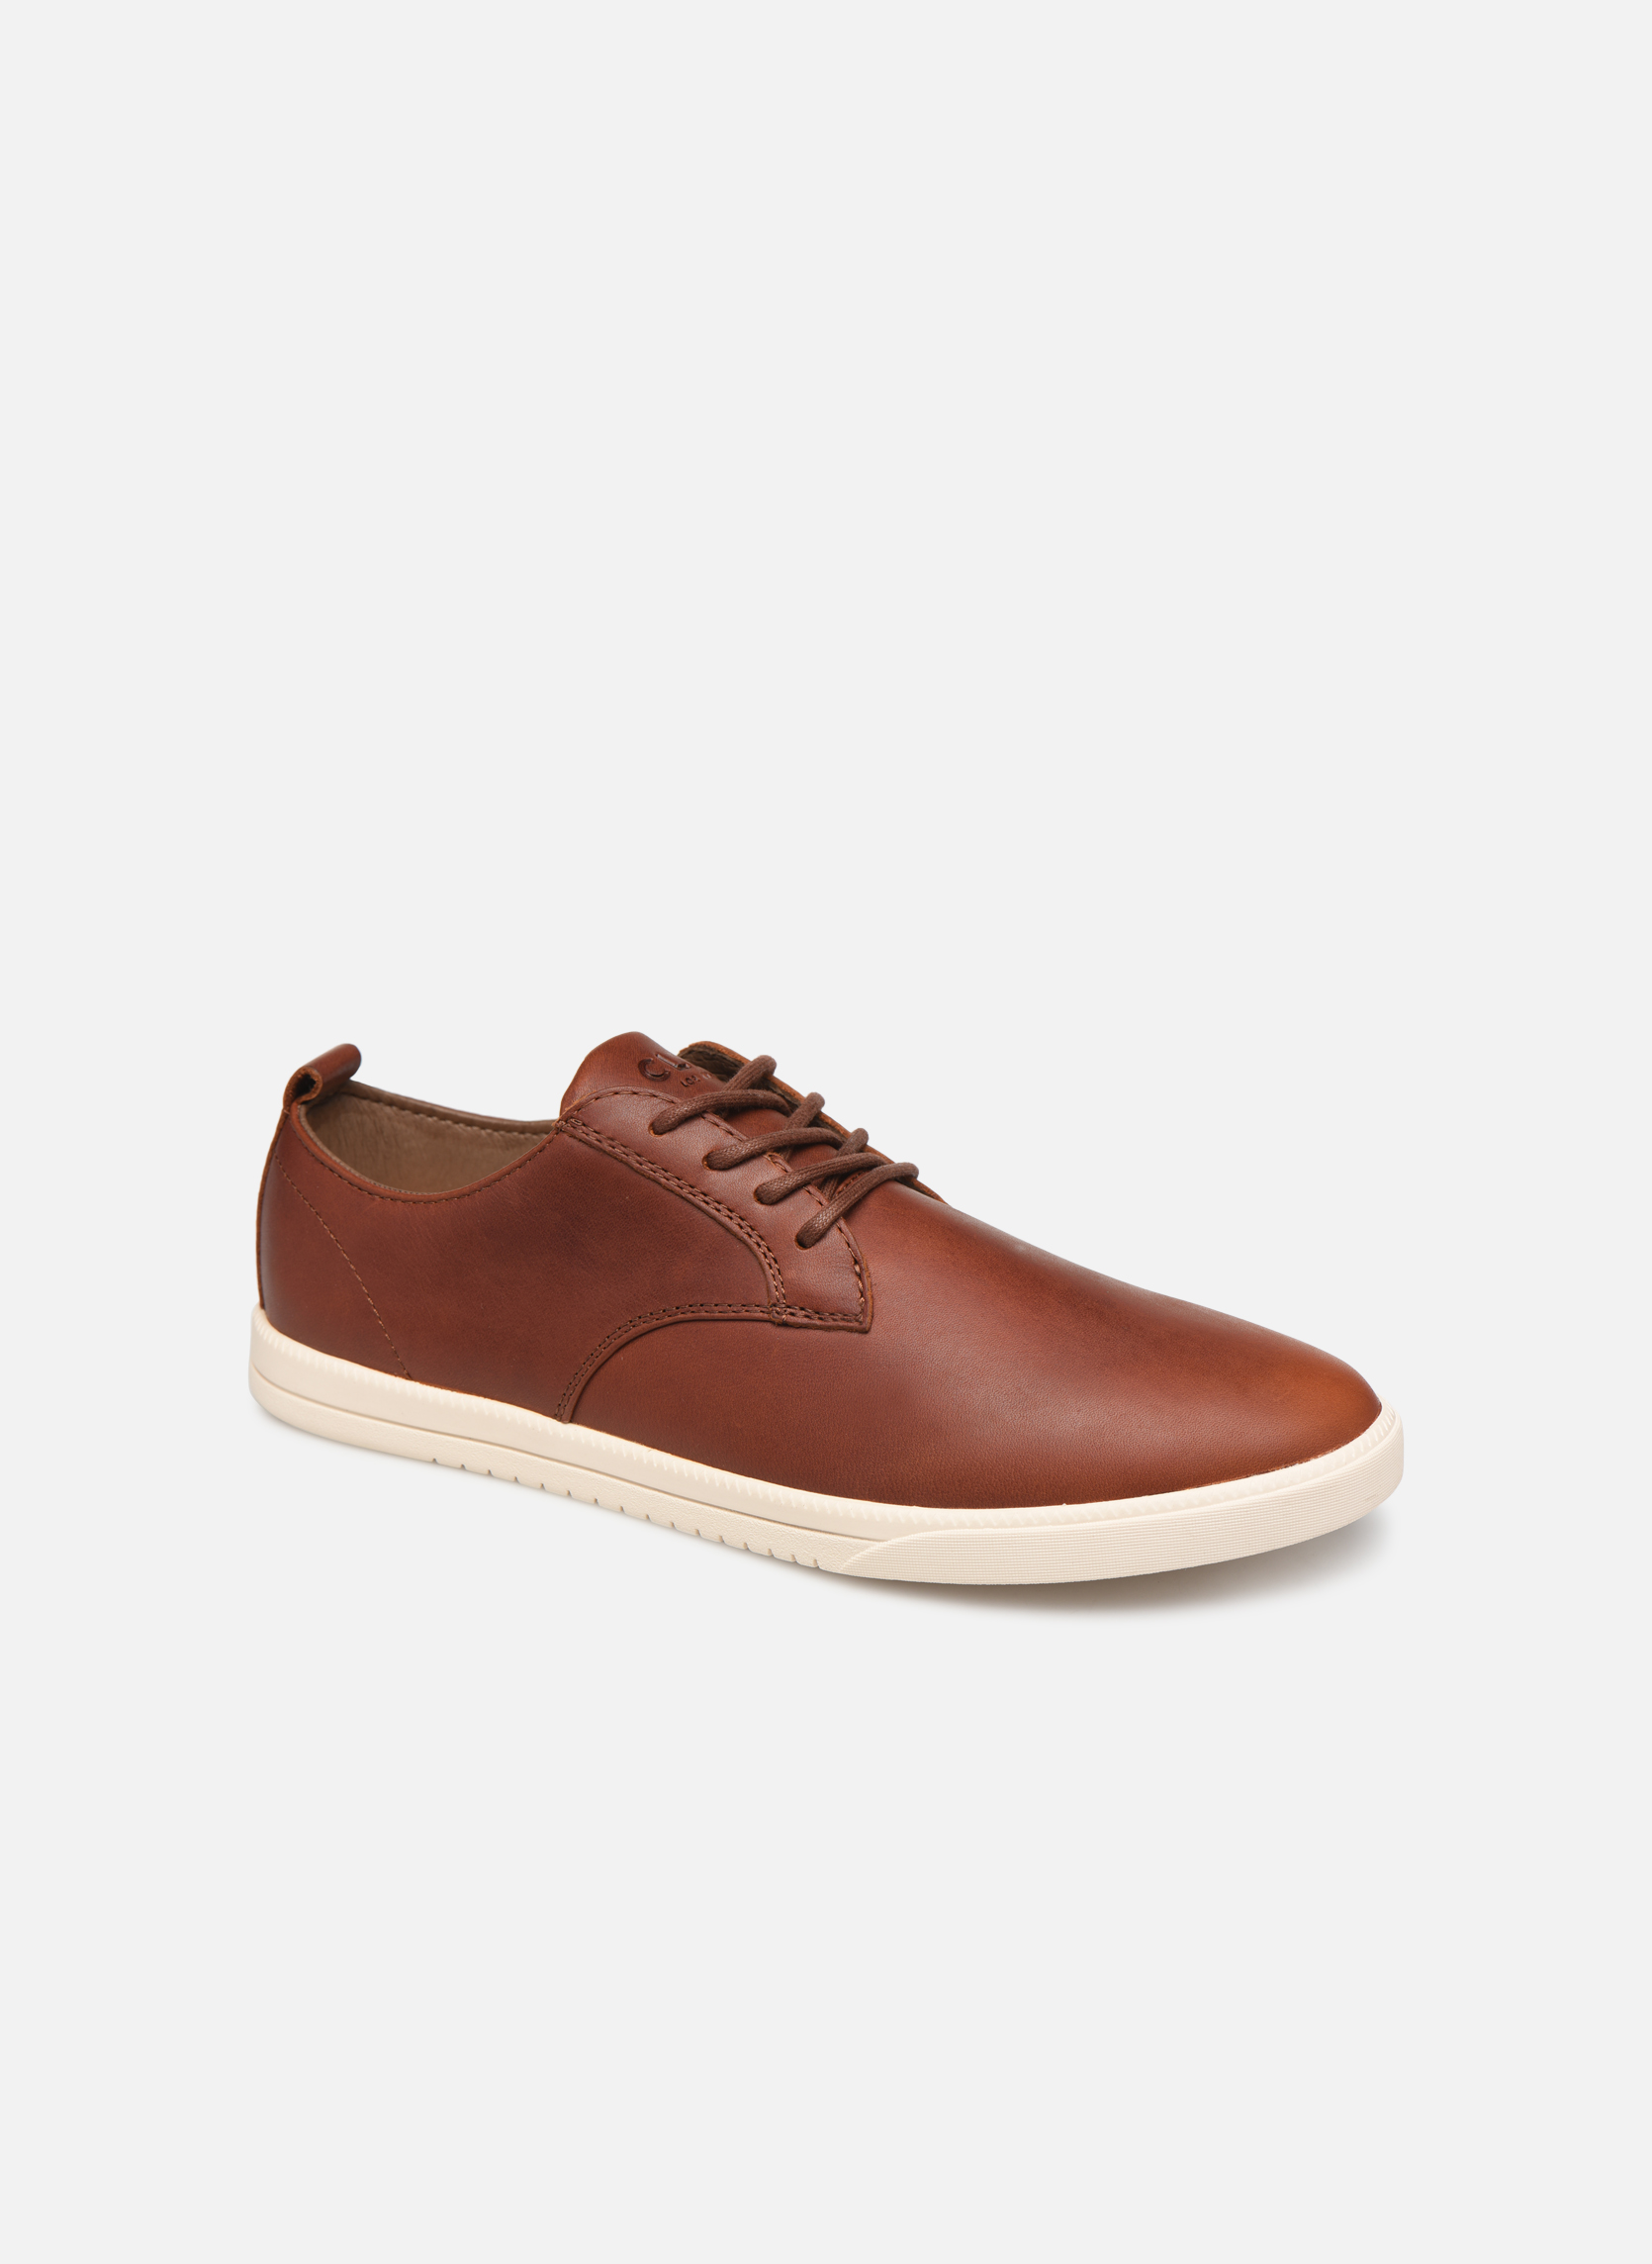 Sneakers Ellington Leather by Clae